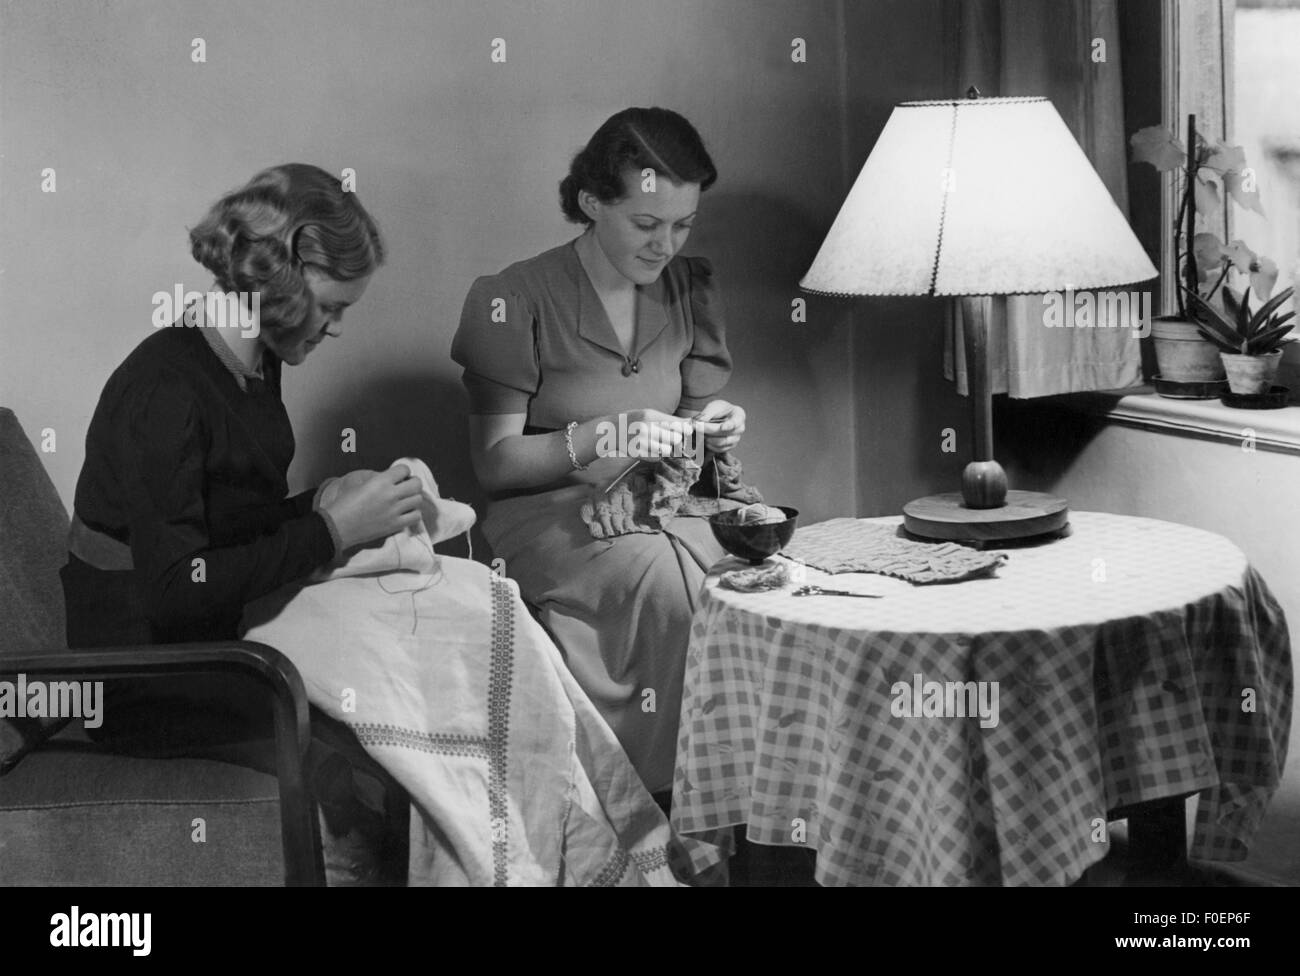 household, needlework, two women sewing and knitting, 1930s, Additional-Rights-Clearences-NA - Stock Image